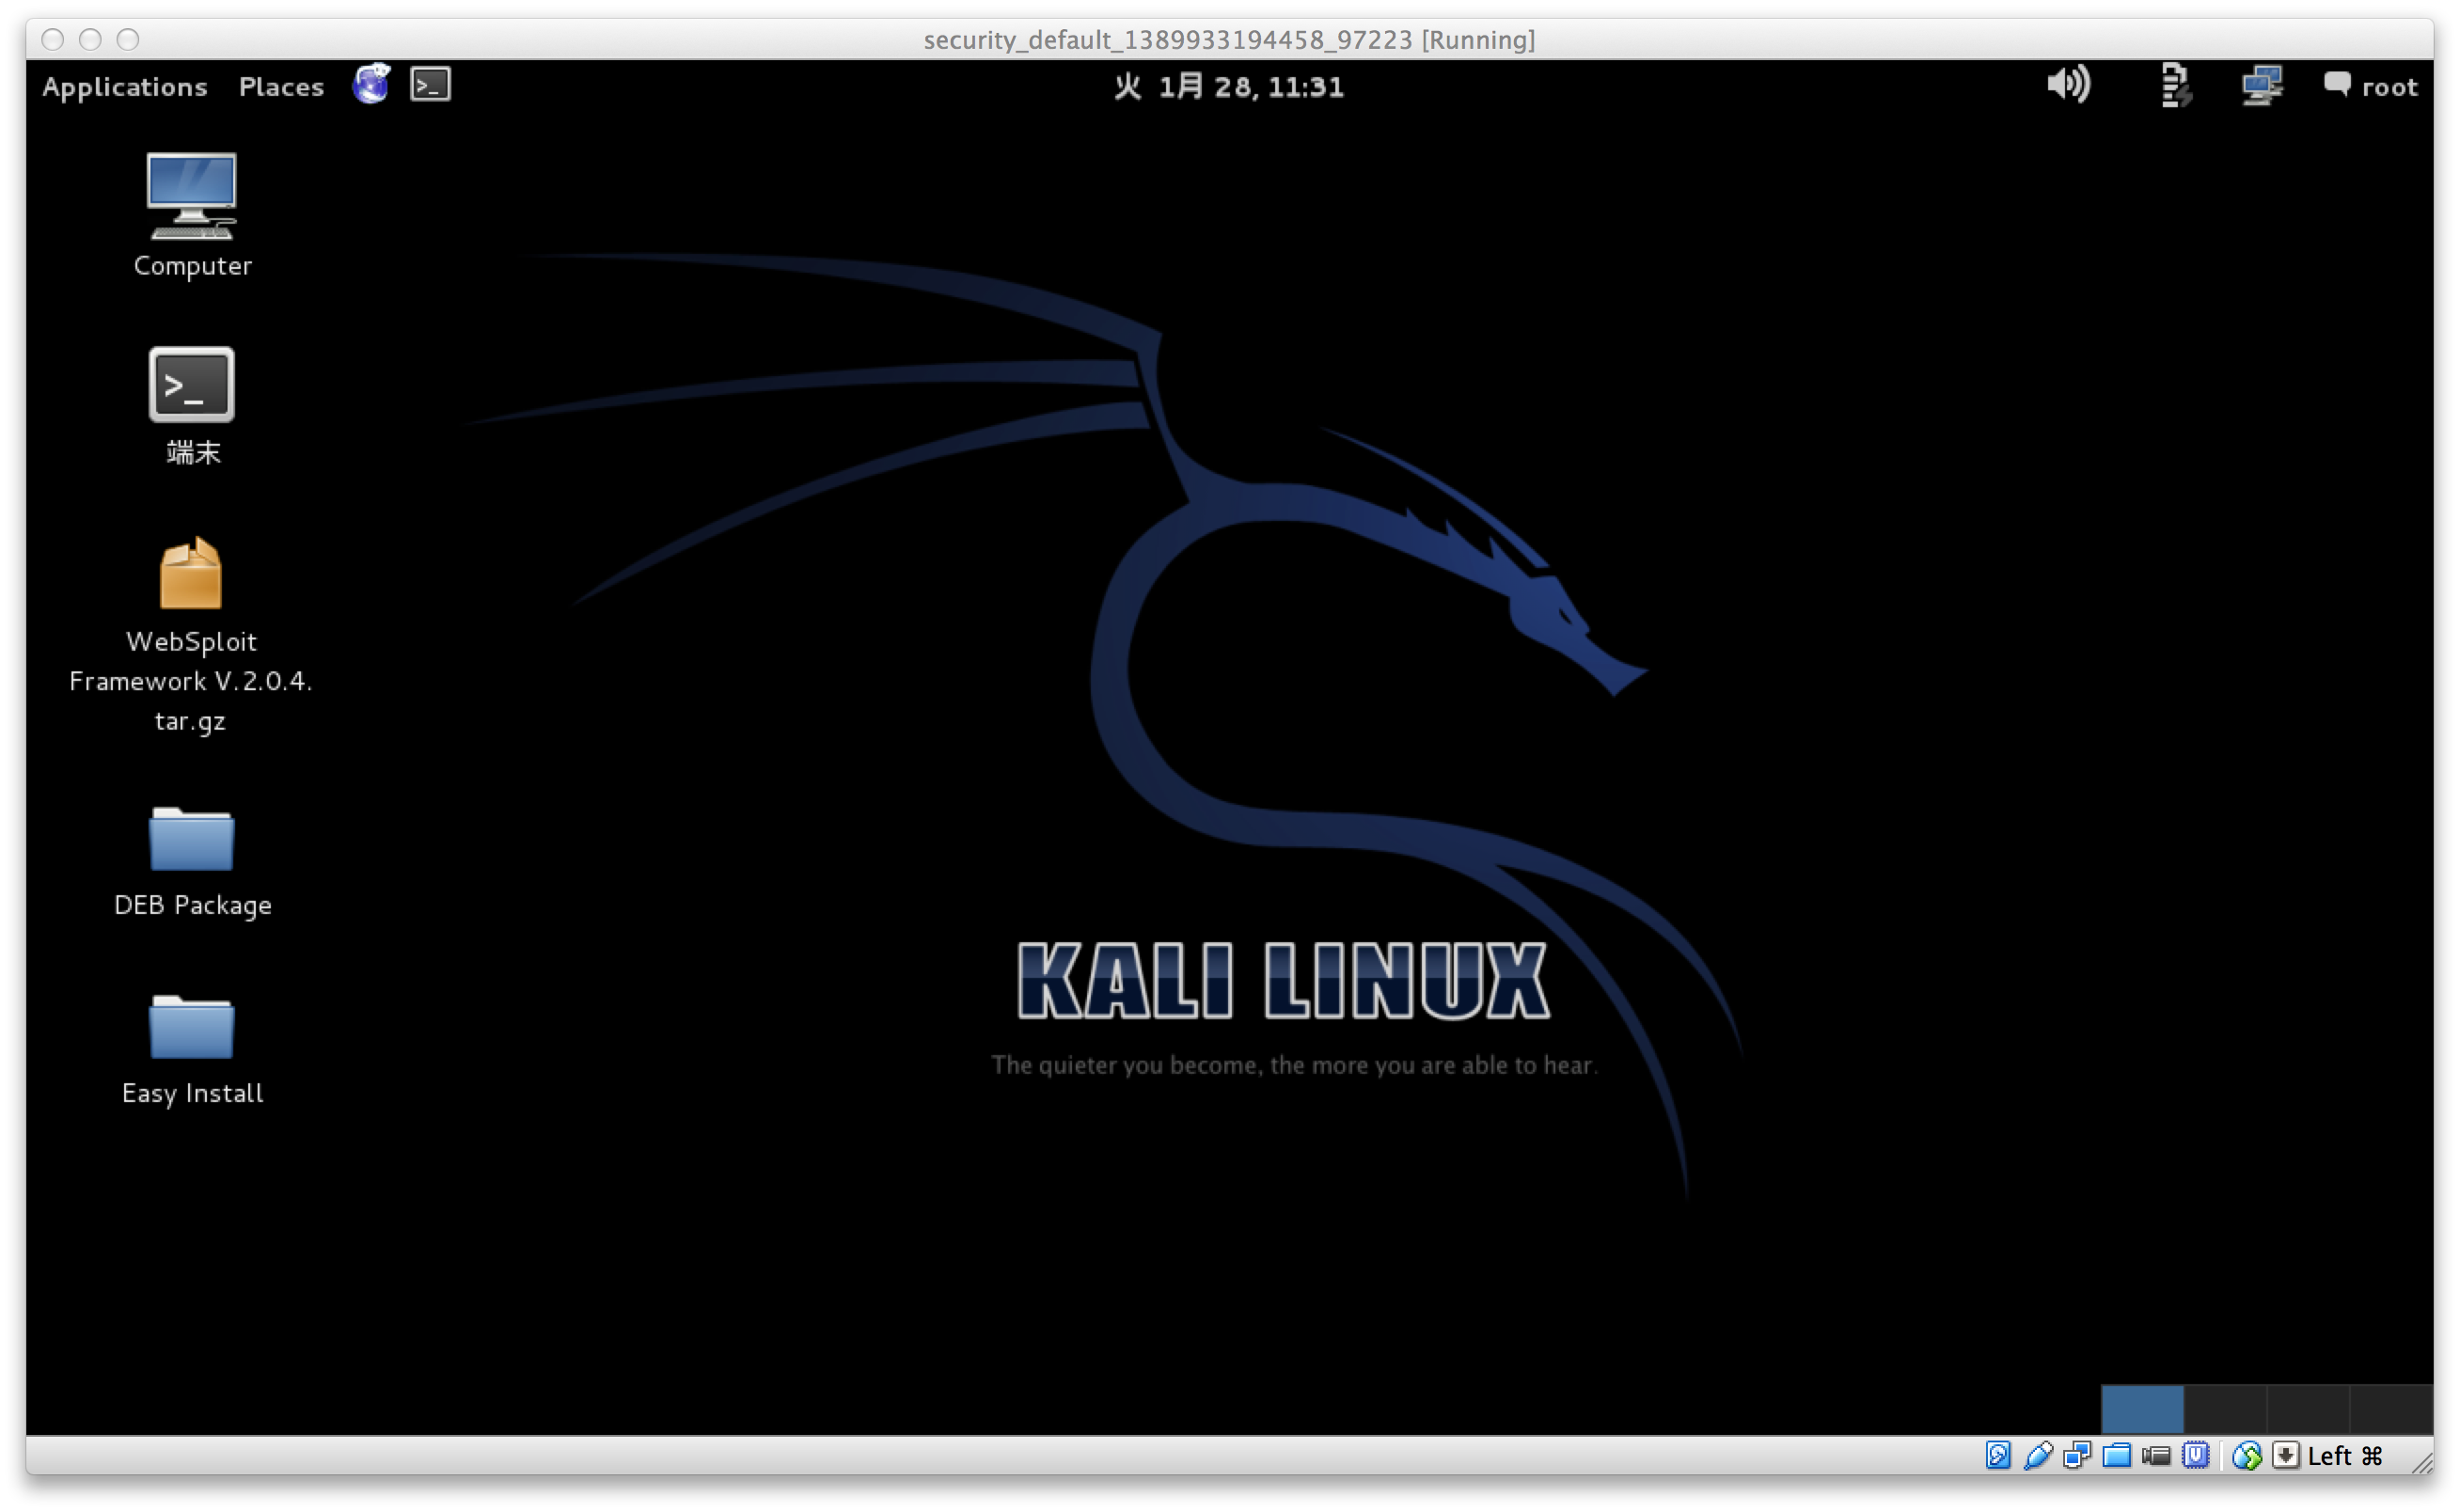 comment pirater un iphone avec kali linux